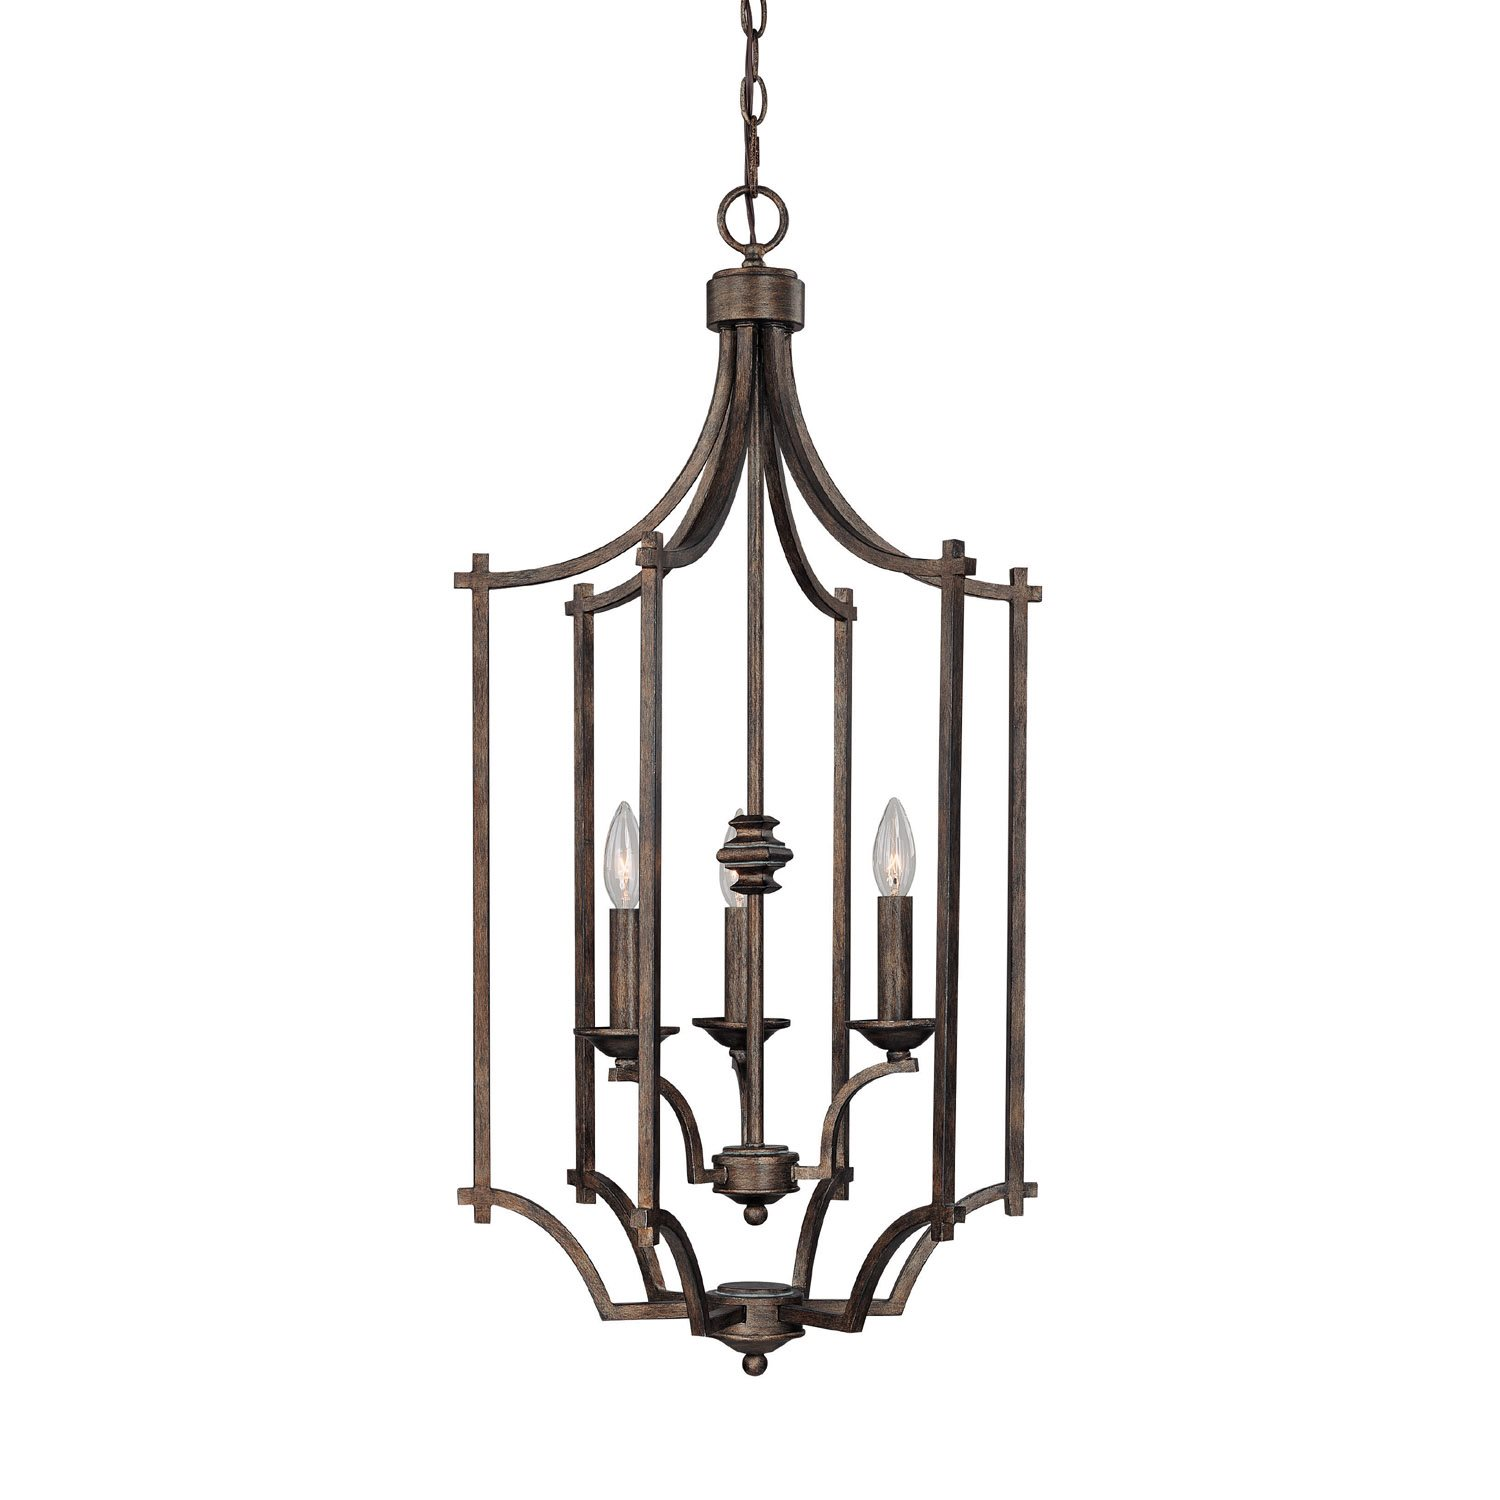 Foyer Lighting Menards : Capital lighting rt towne country transitional foyer